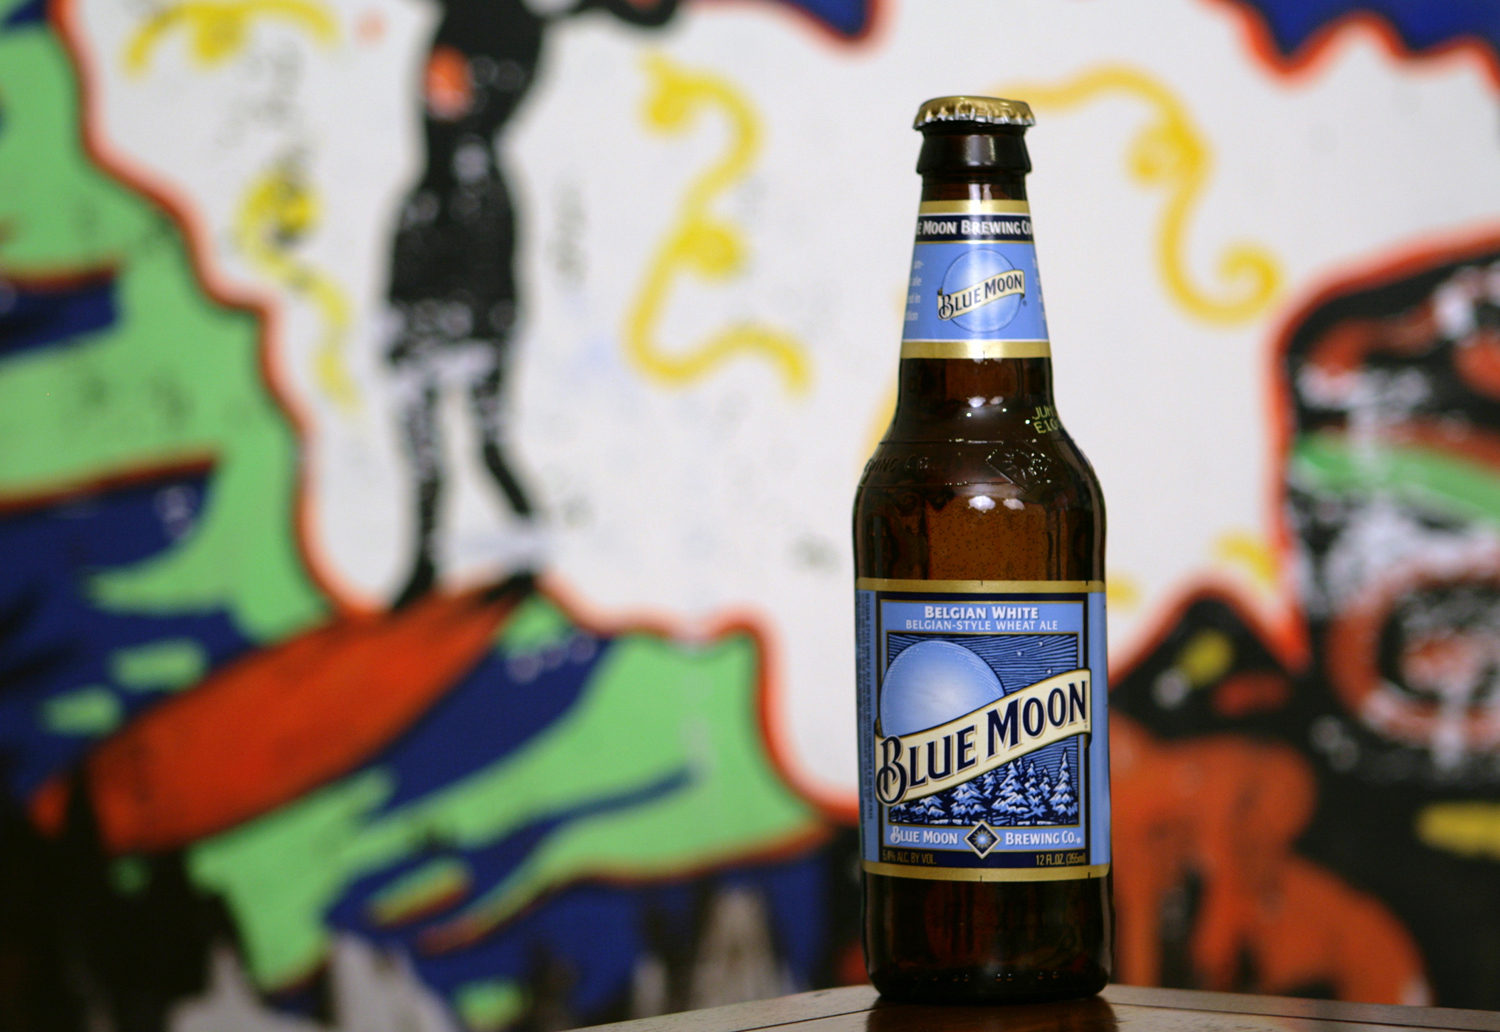 Summer Blue Moon Beer will make your season great.